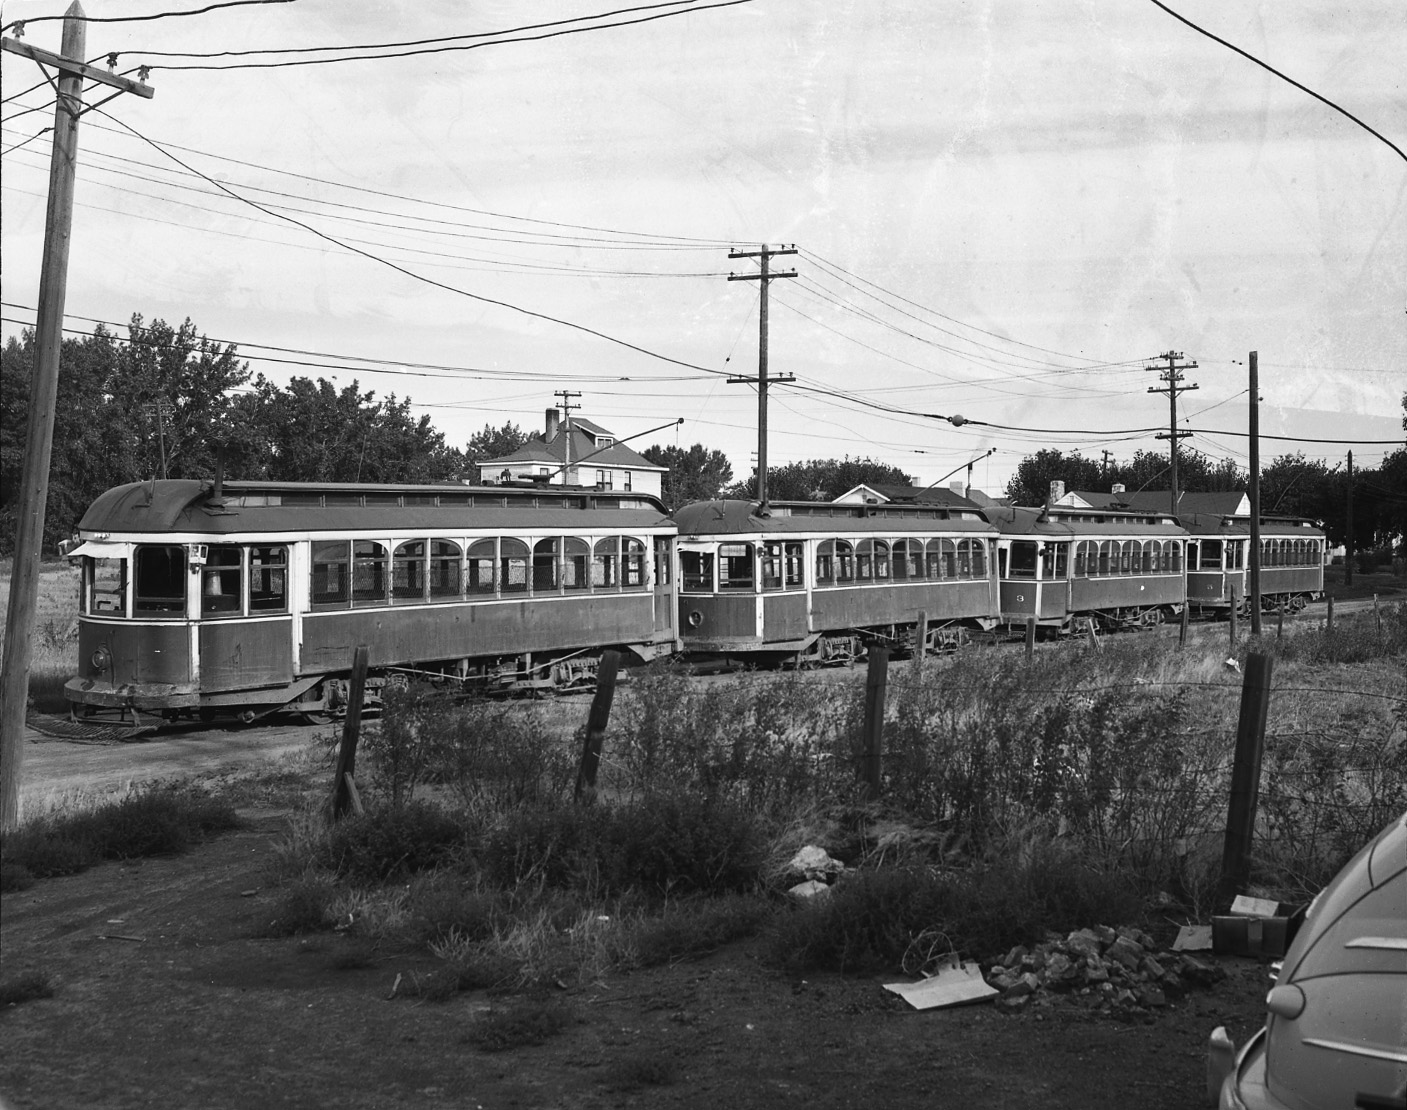 View of the Lethbridge streetcars in a storage yard after the closure of the street railway system on 8 September 1947.